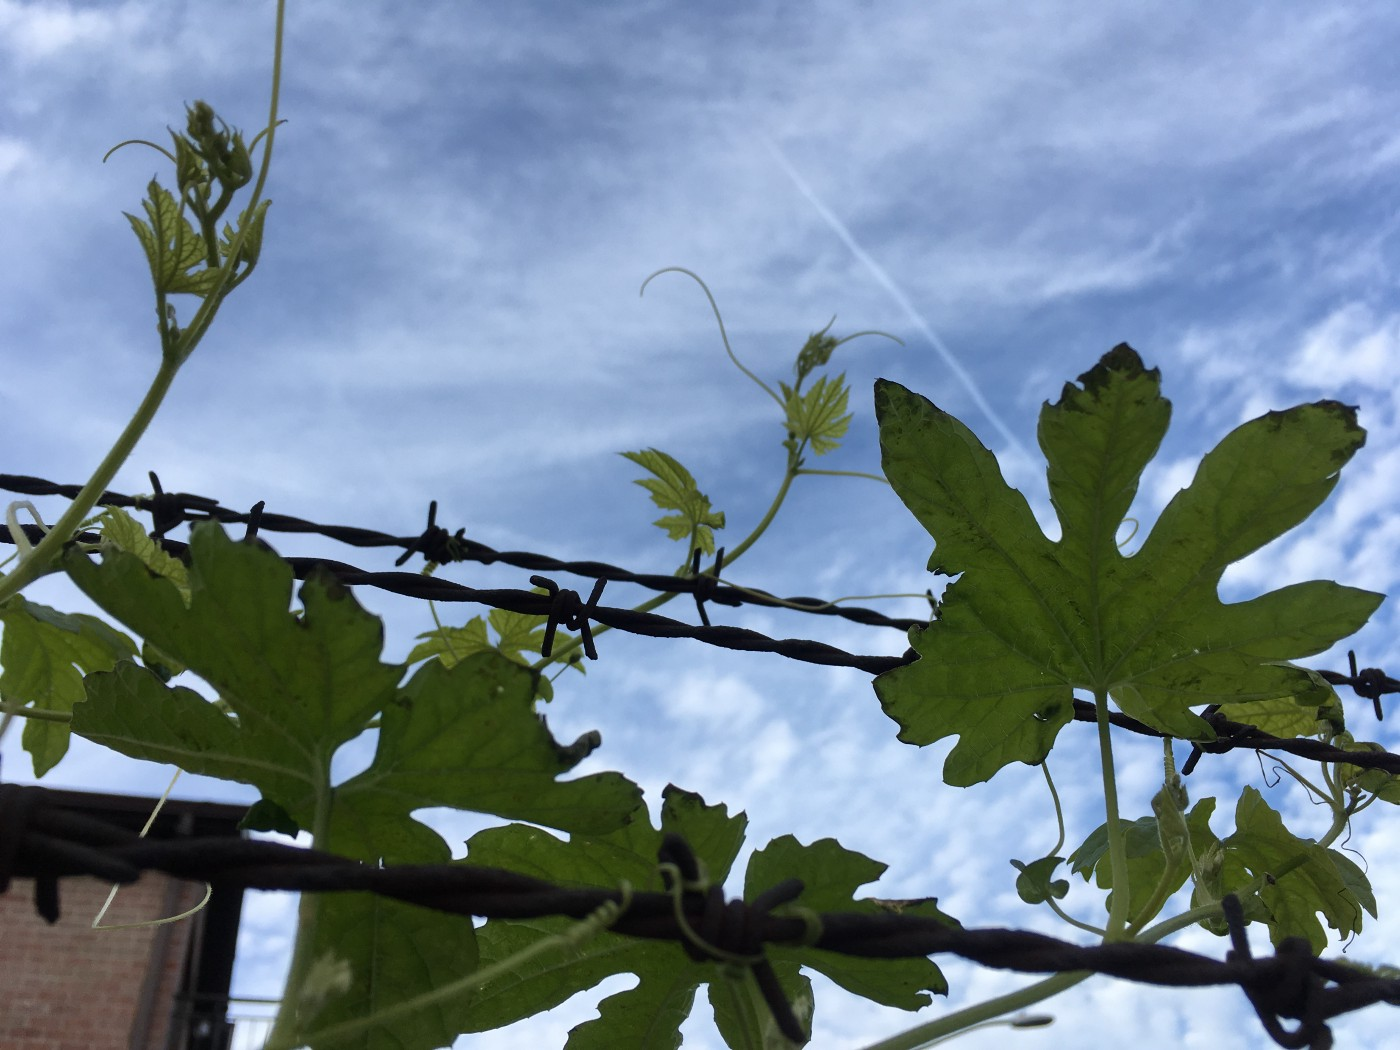 Medicinal plant ampalaya or bitter melon vine growing around barbed wire in Queens, NY, USA.